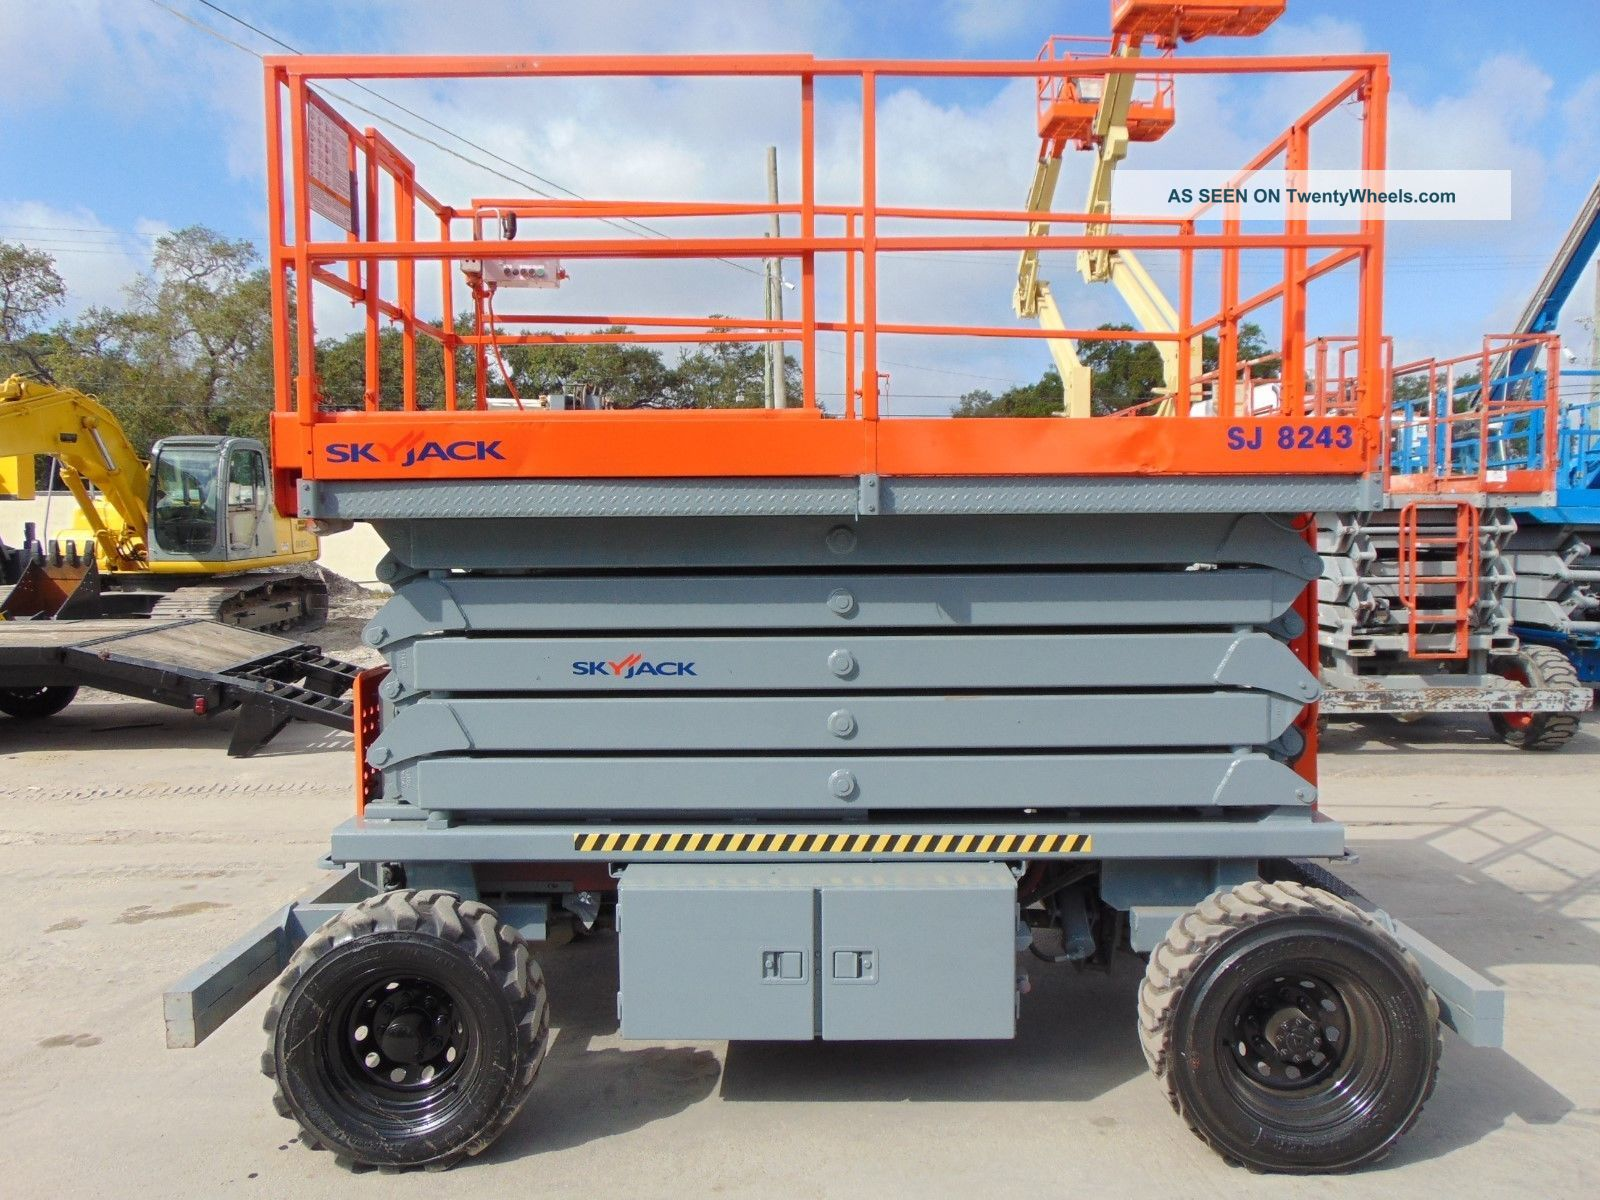 2007 Skyjack Sj - 8243 Rough Terrain Scissor Lift - 1,  000 Lb Capacity - Diesel 4x4 Scissor & Boom Lifts photo